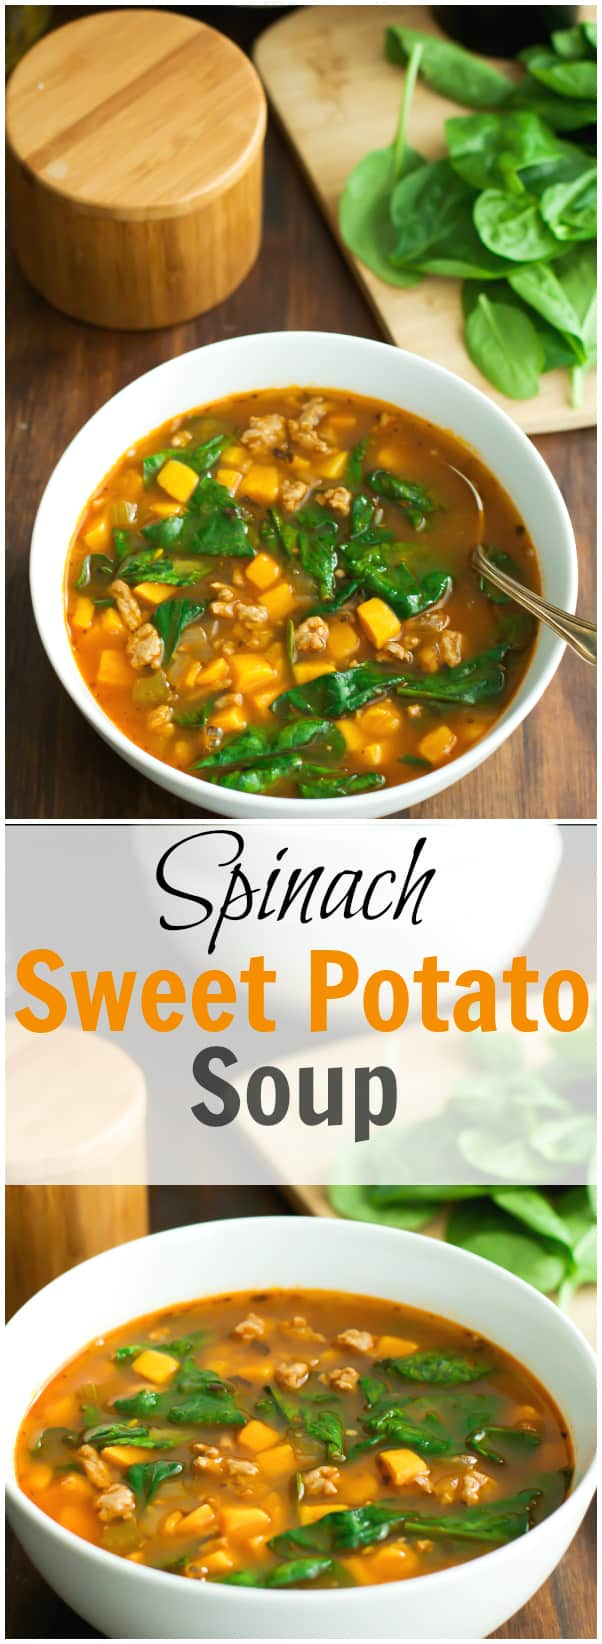 spinach sweet potato soup1